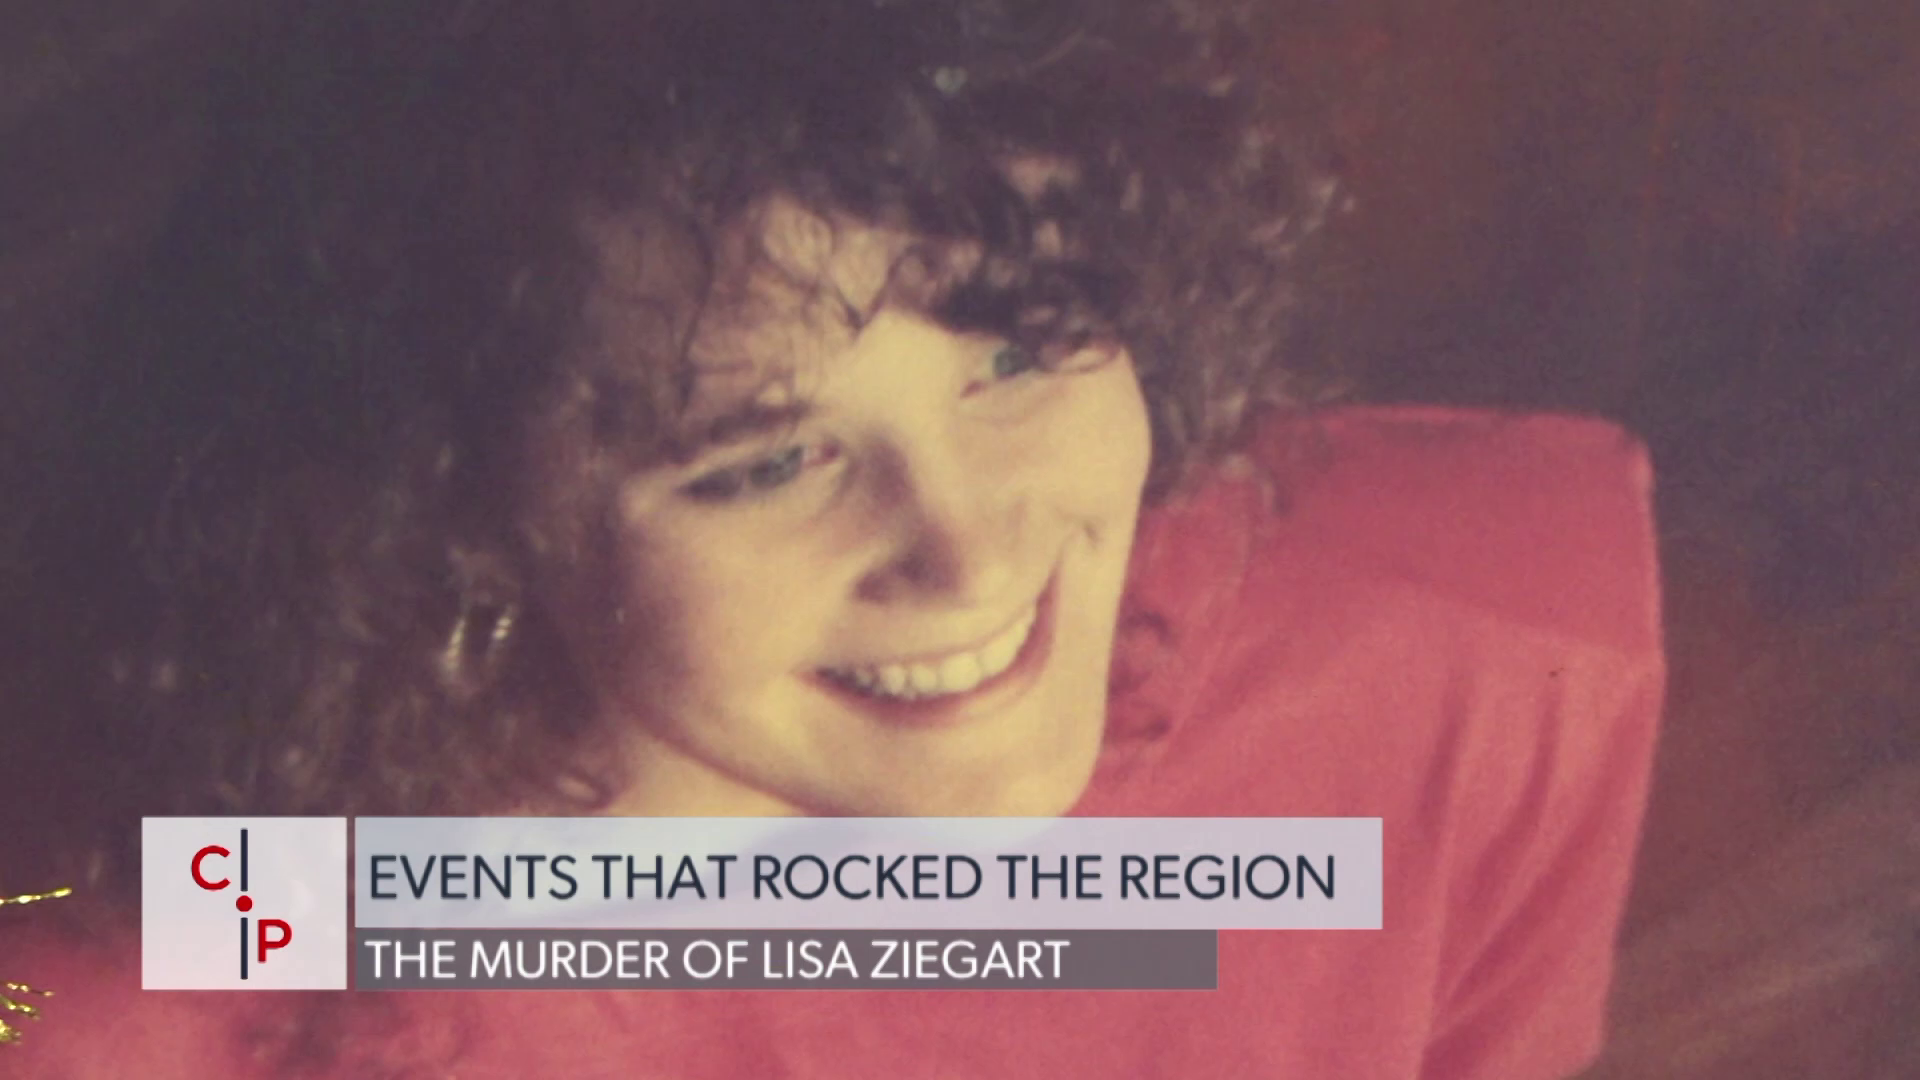 Connecting Point's Events That Rocked the Region looks back at the Lisa Ziegert Murder. The 1992 kidnapping, rape, and murder of the 24 year old from card shop in Agawam, MA shocked western Massachusetts, and the case went unsolved for nearly 25 years until a breakthrough led to the arrest of Gary Schara.